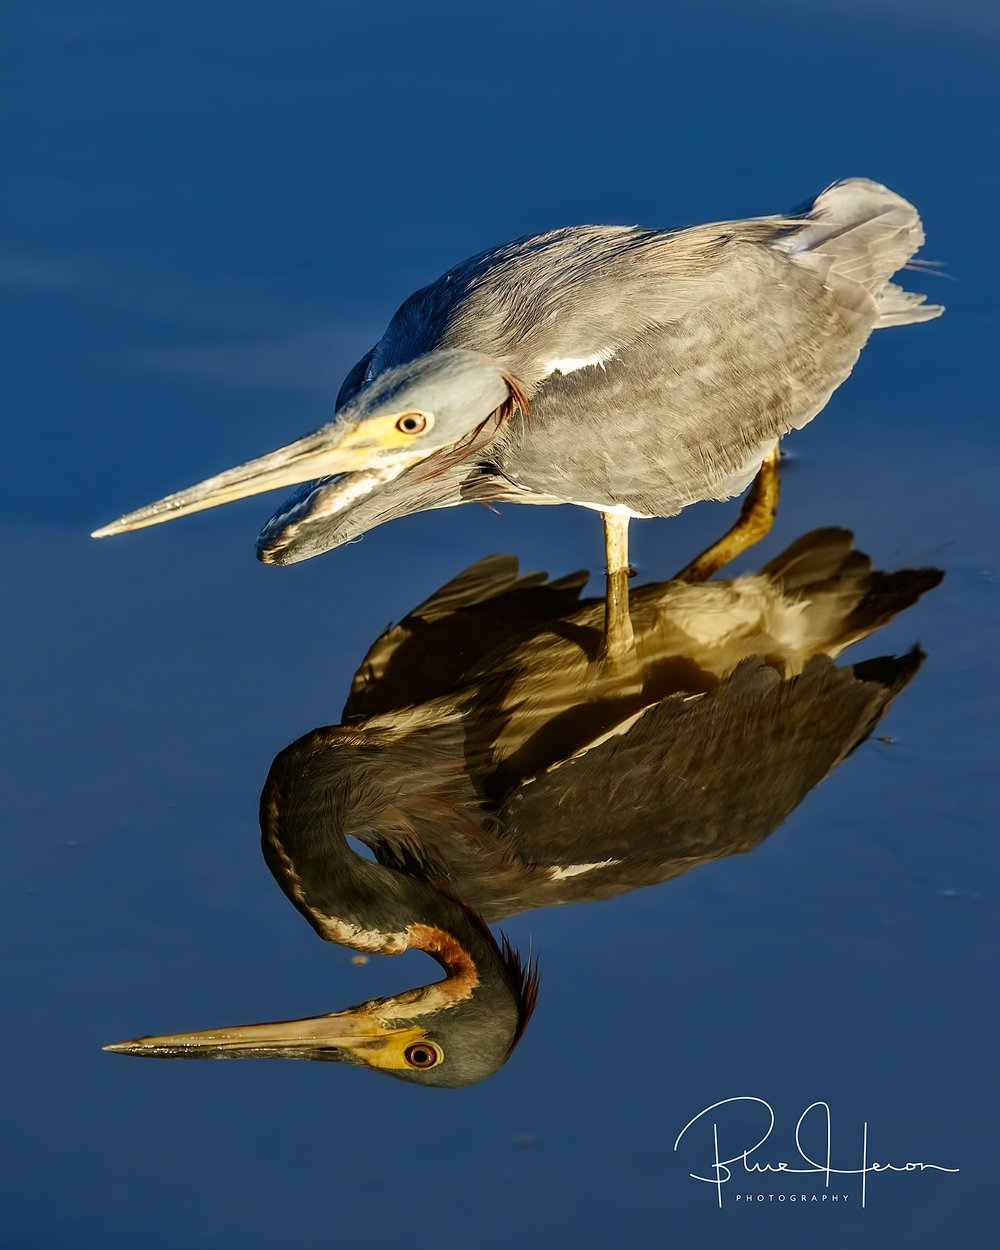 Double trouble,,,Tricolored Heron begins its morning hunt in the outgoing tidal stream